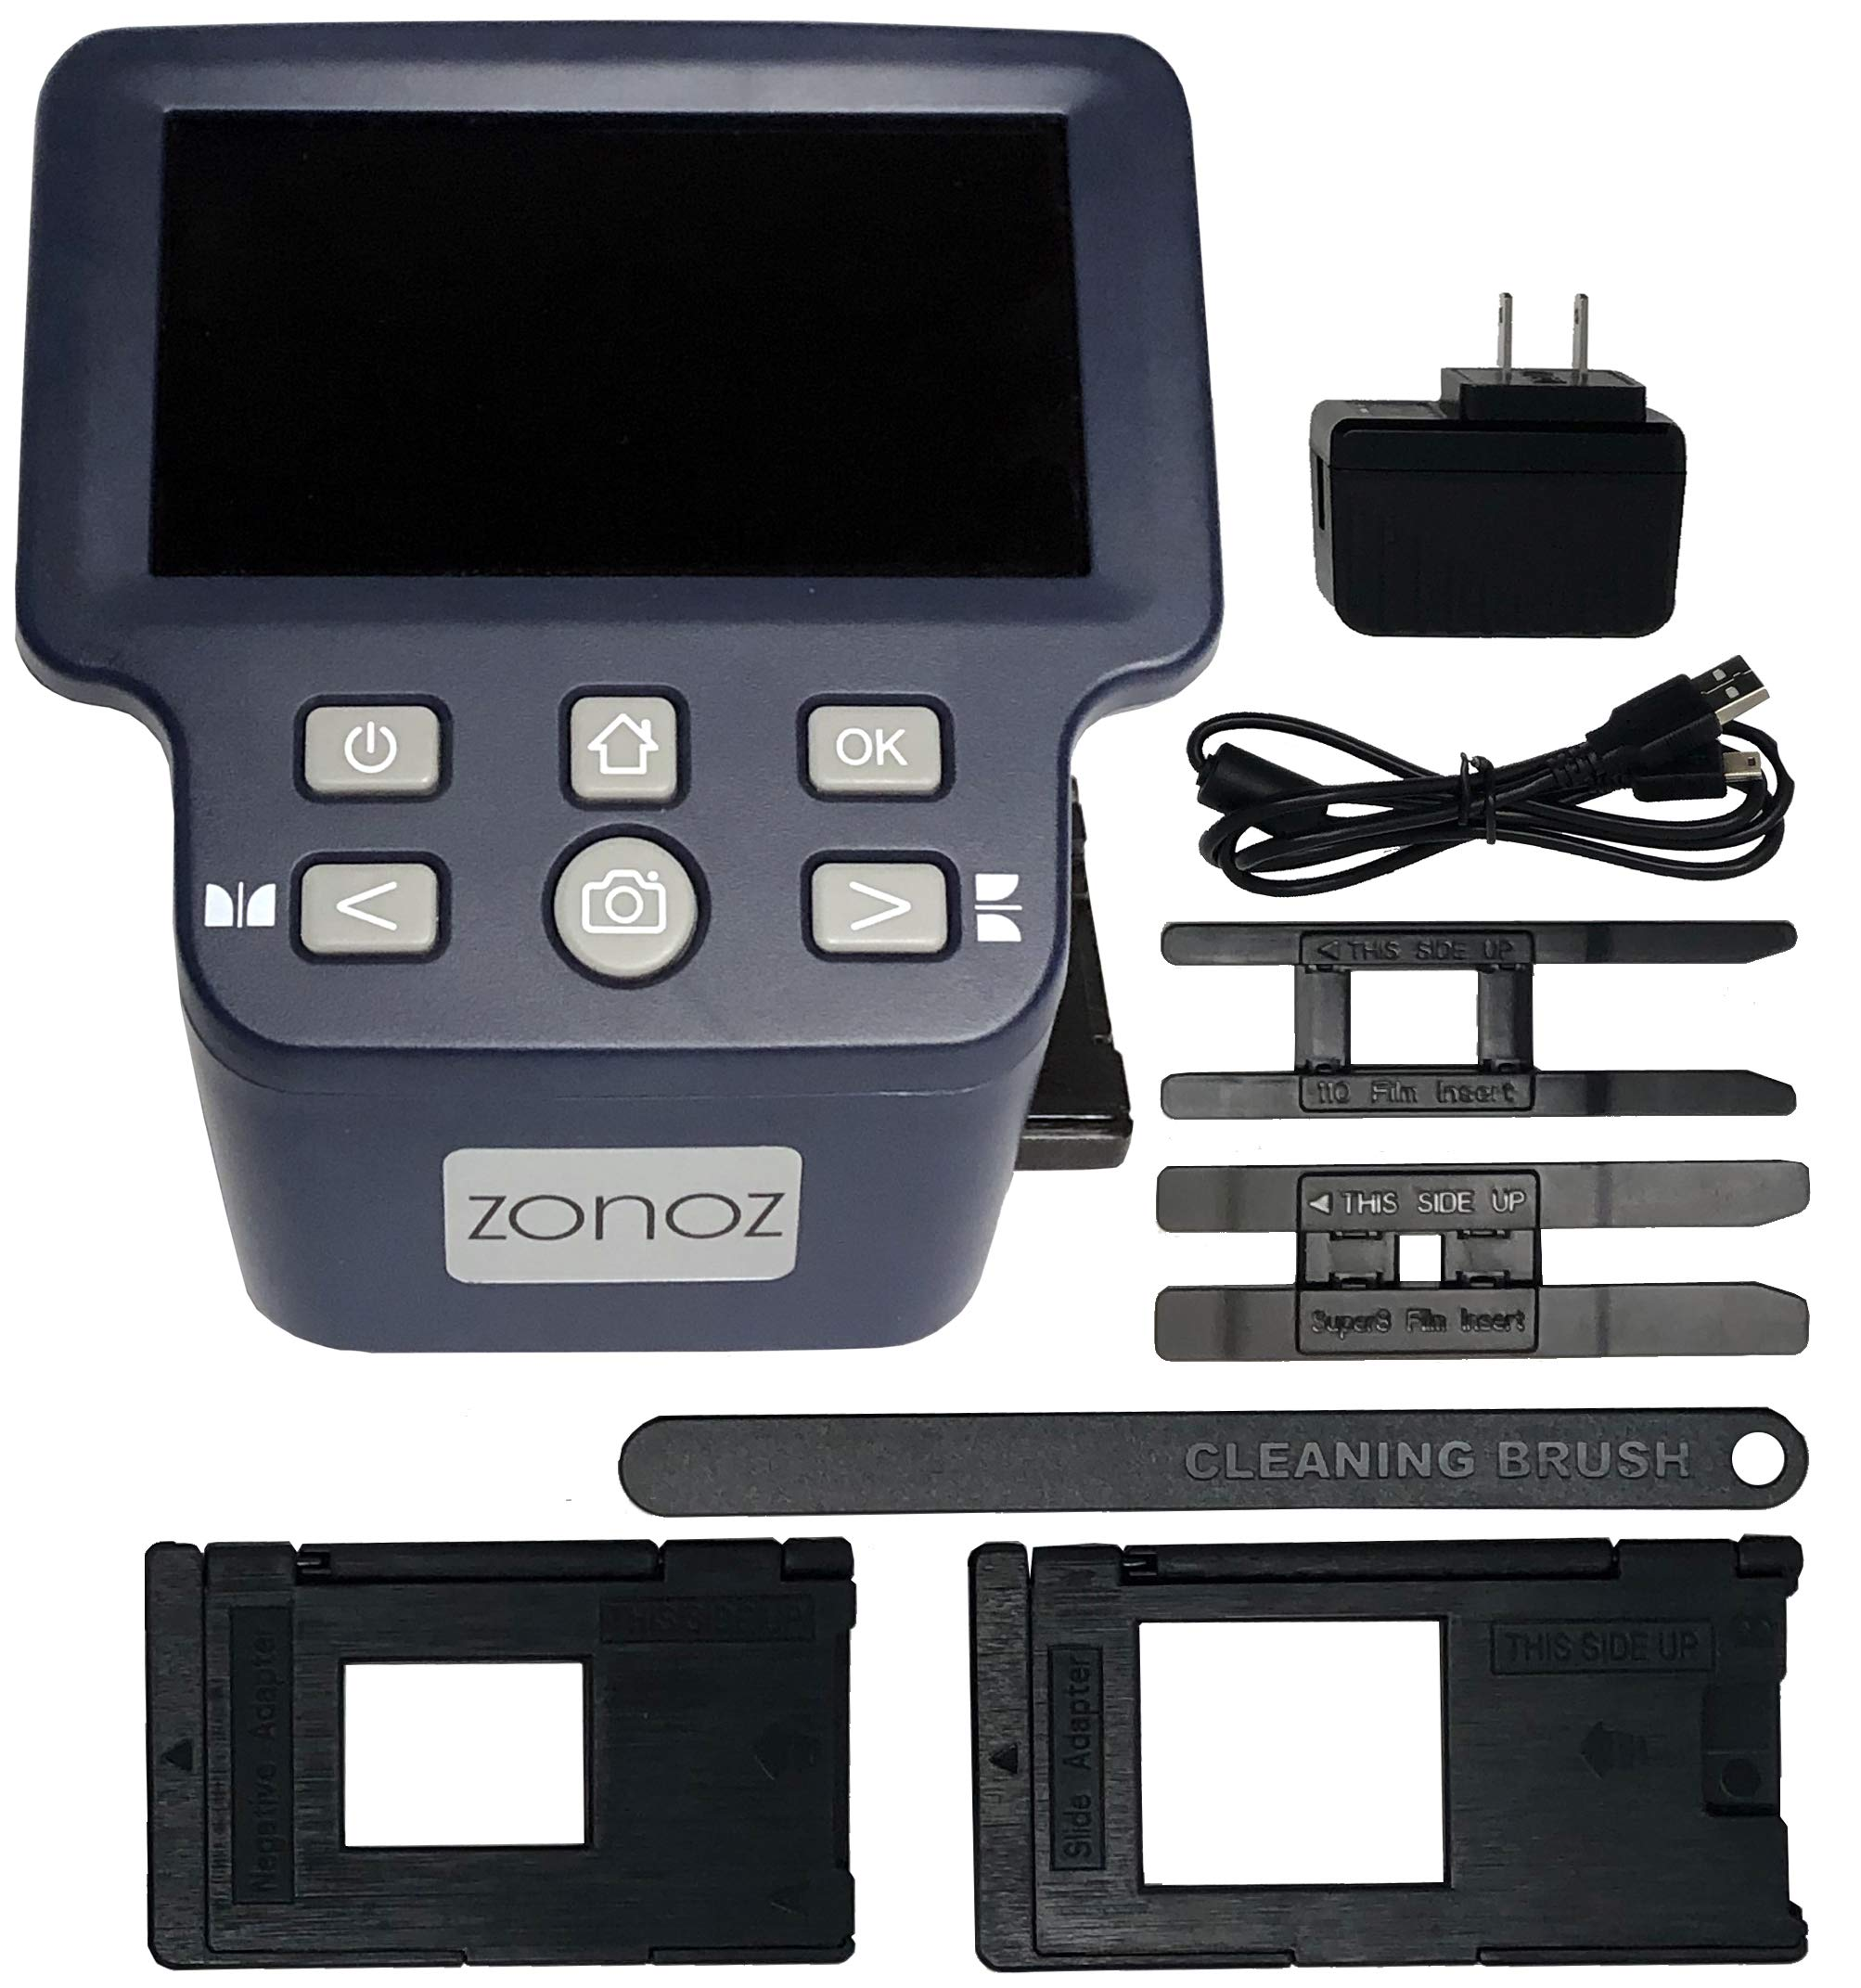 zonoz FS-Four Digital Film & Slide Scanner Converter w/HDMI Output - Converts 35mm, 126, 110, Super 8 & 8mm Film Negatives & Slides to JPEG - Large 5'' LCD, Easy-Load Adapters (Worldwide 110V-220V) by zonoz (Image #7)